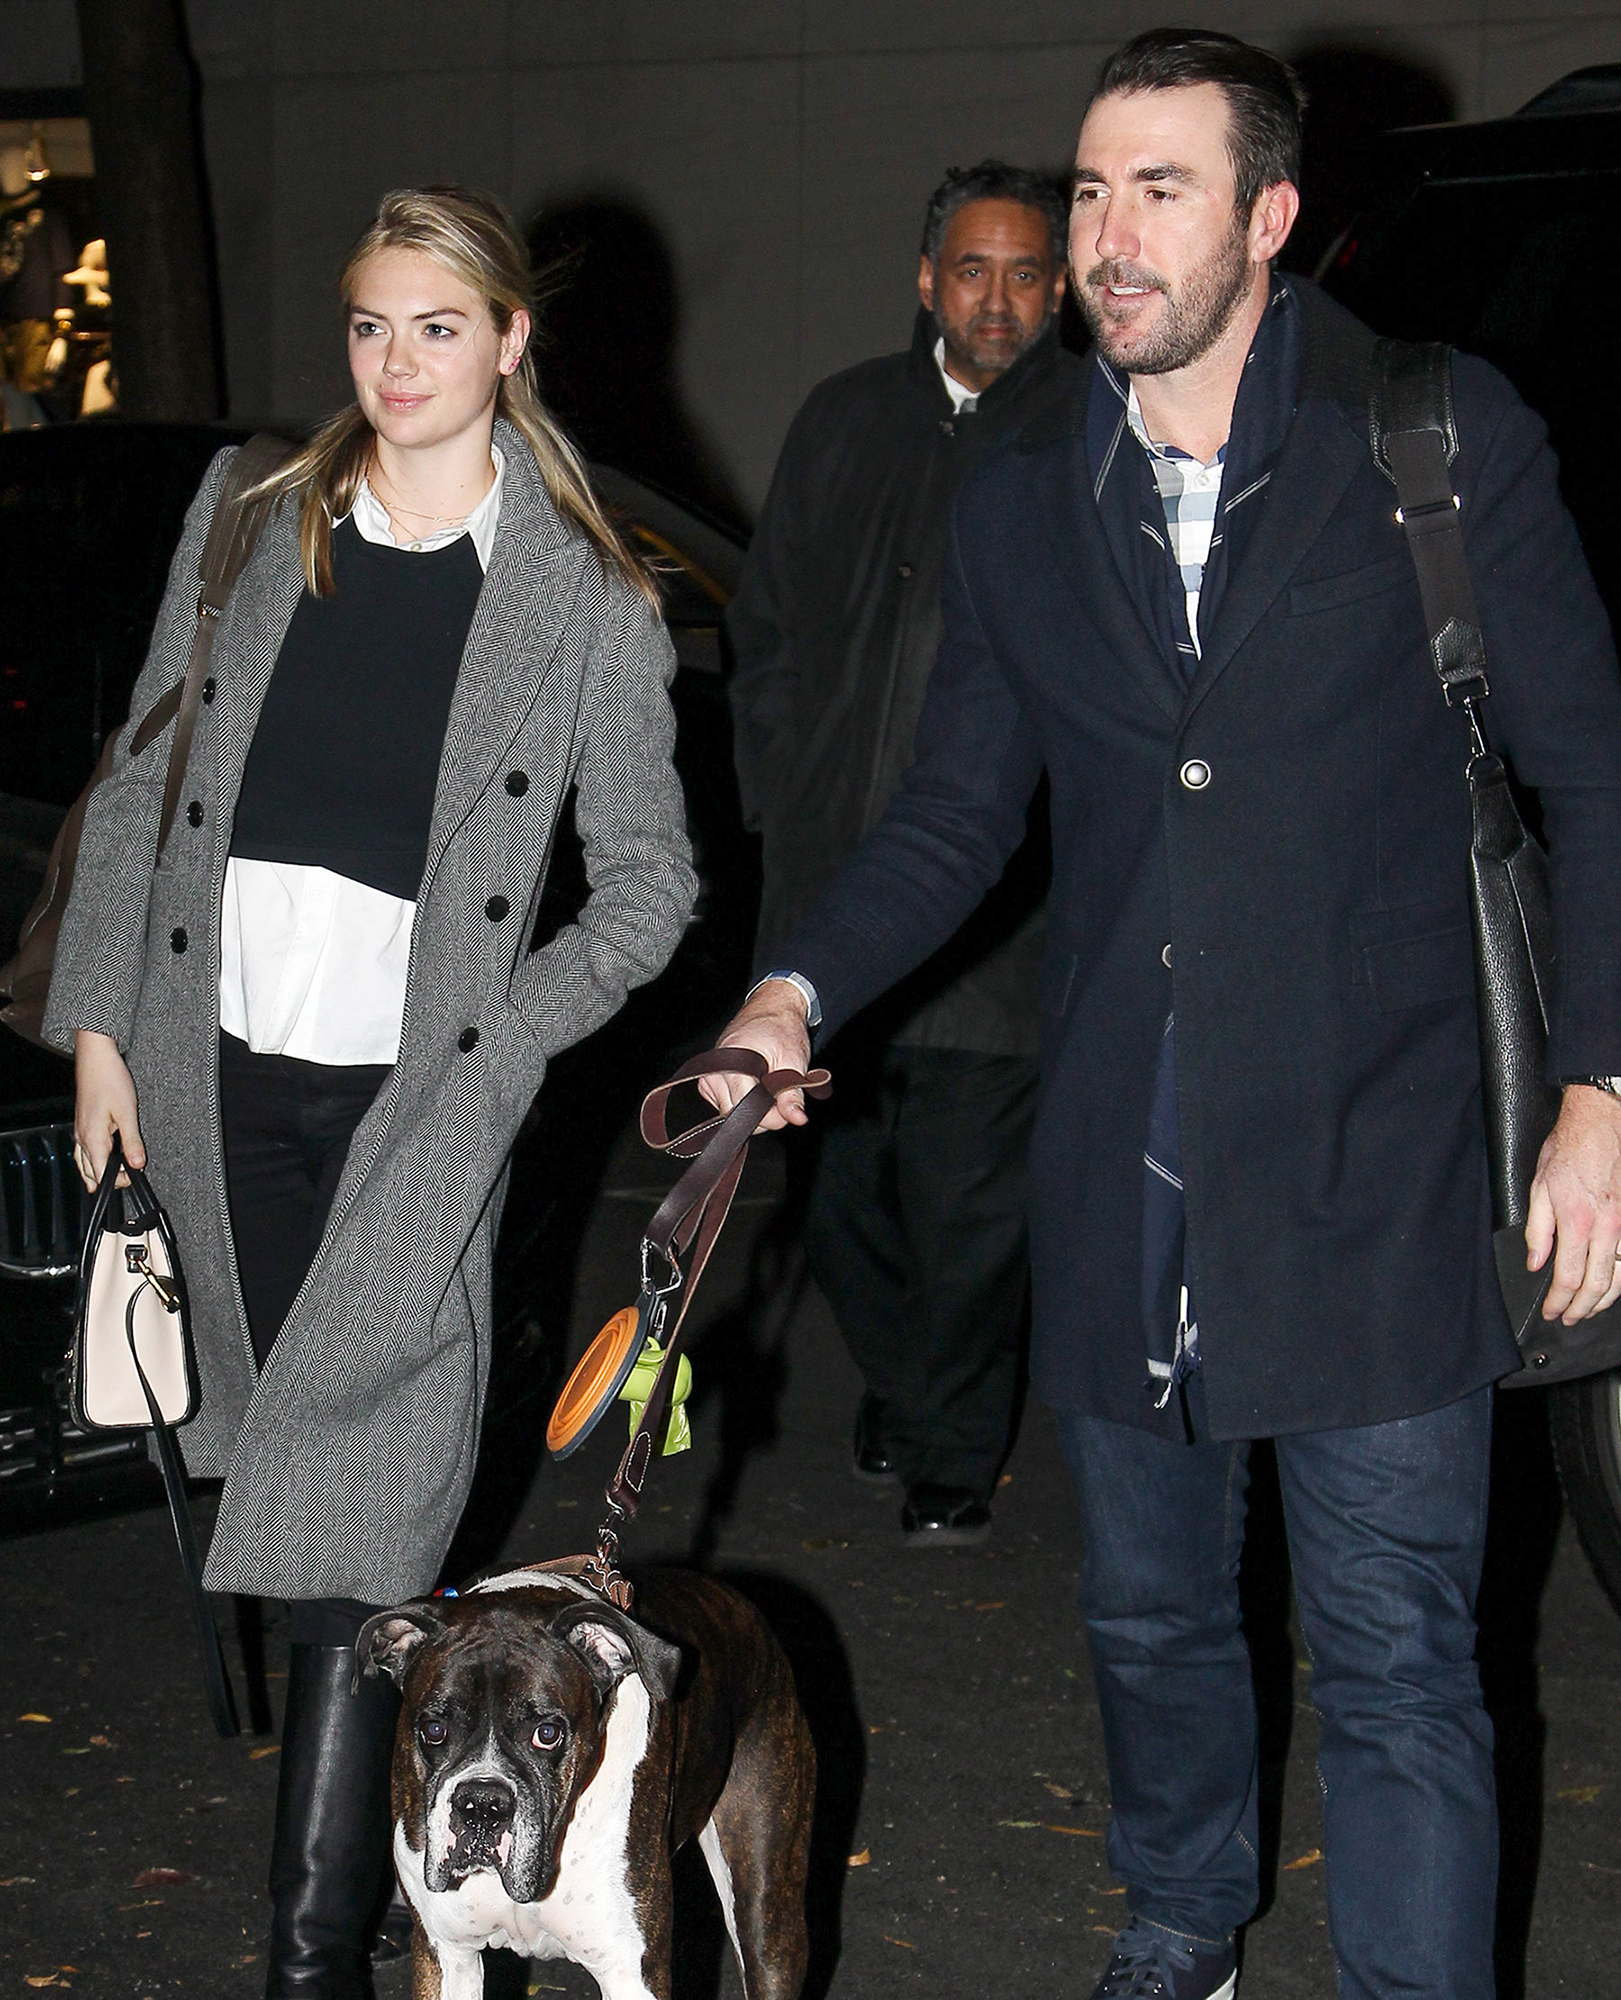 EXCLUSIVE: Kate Upton and Husband Justin Verlander Touch Down in New York City Early This Morning